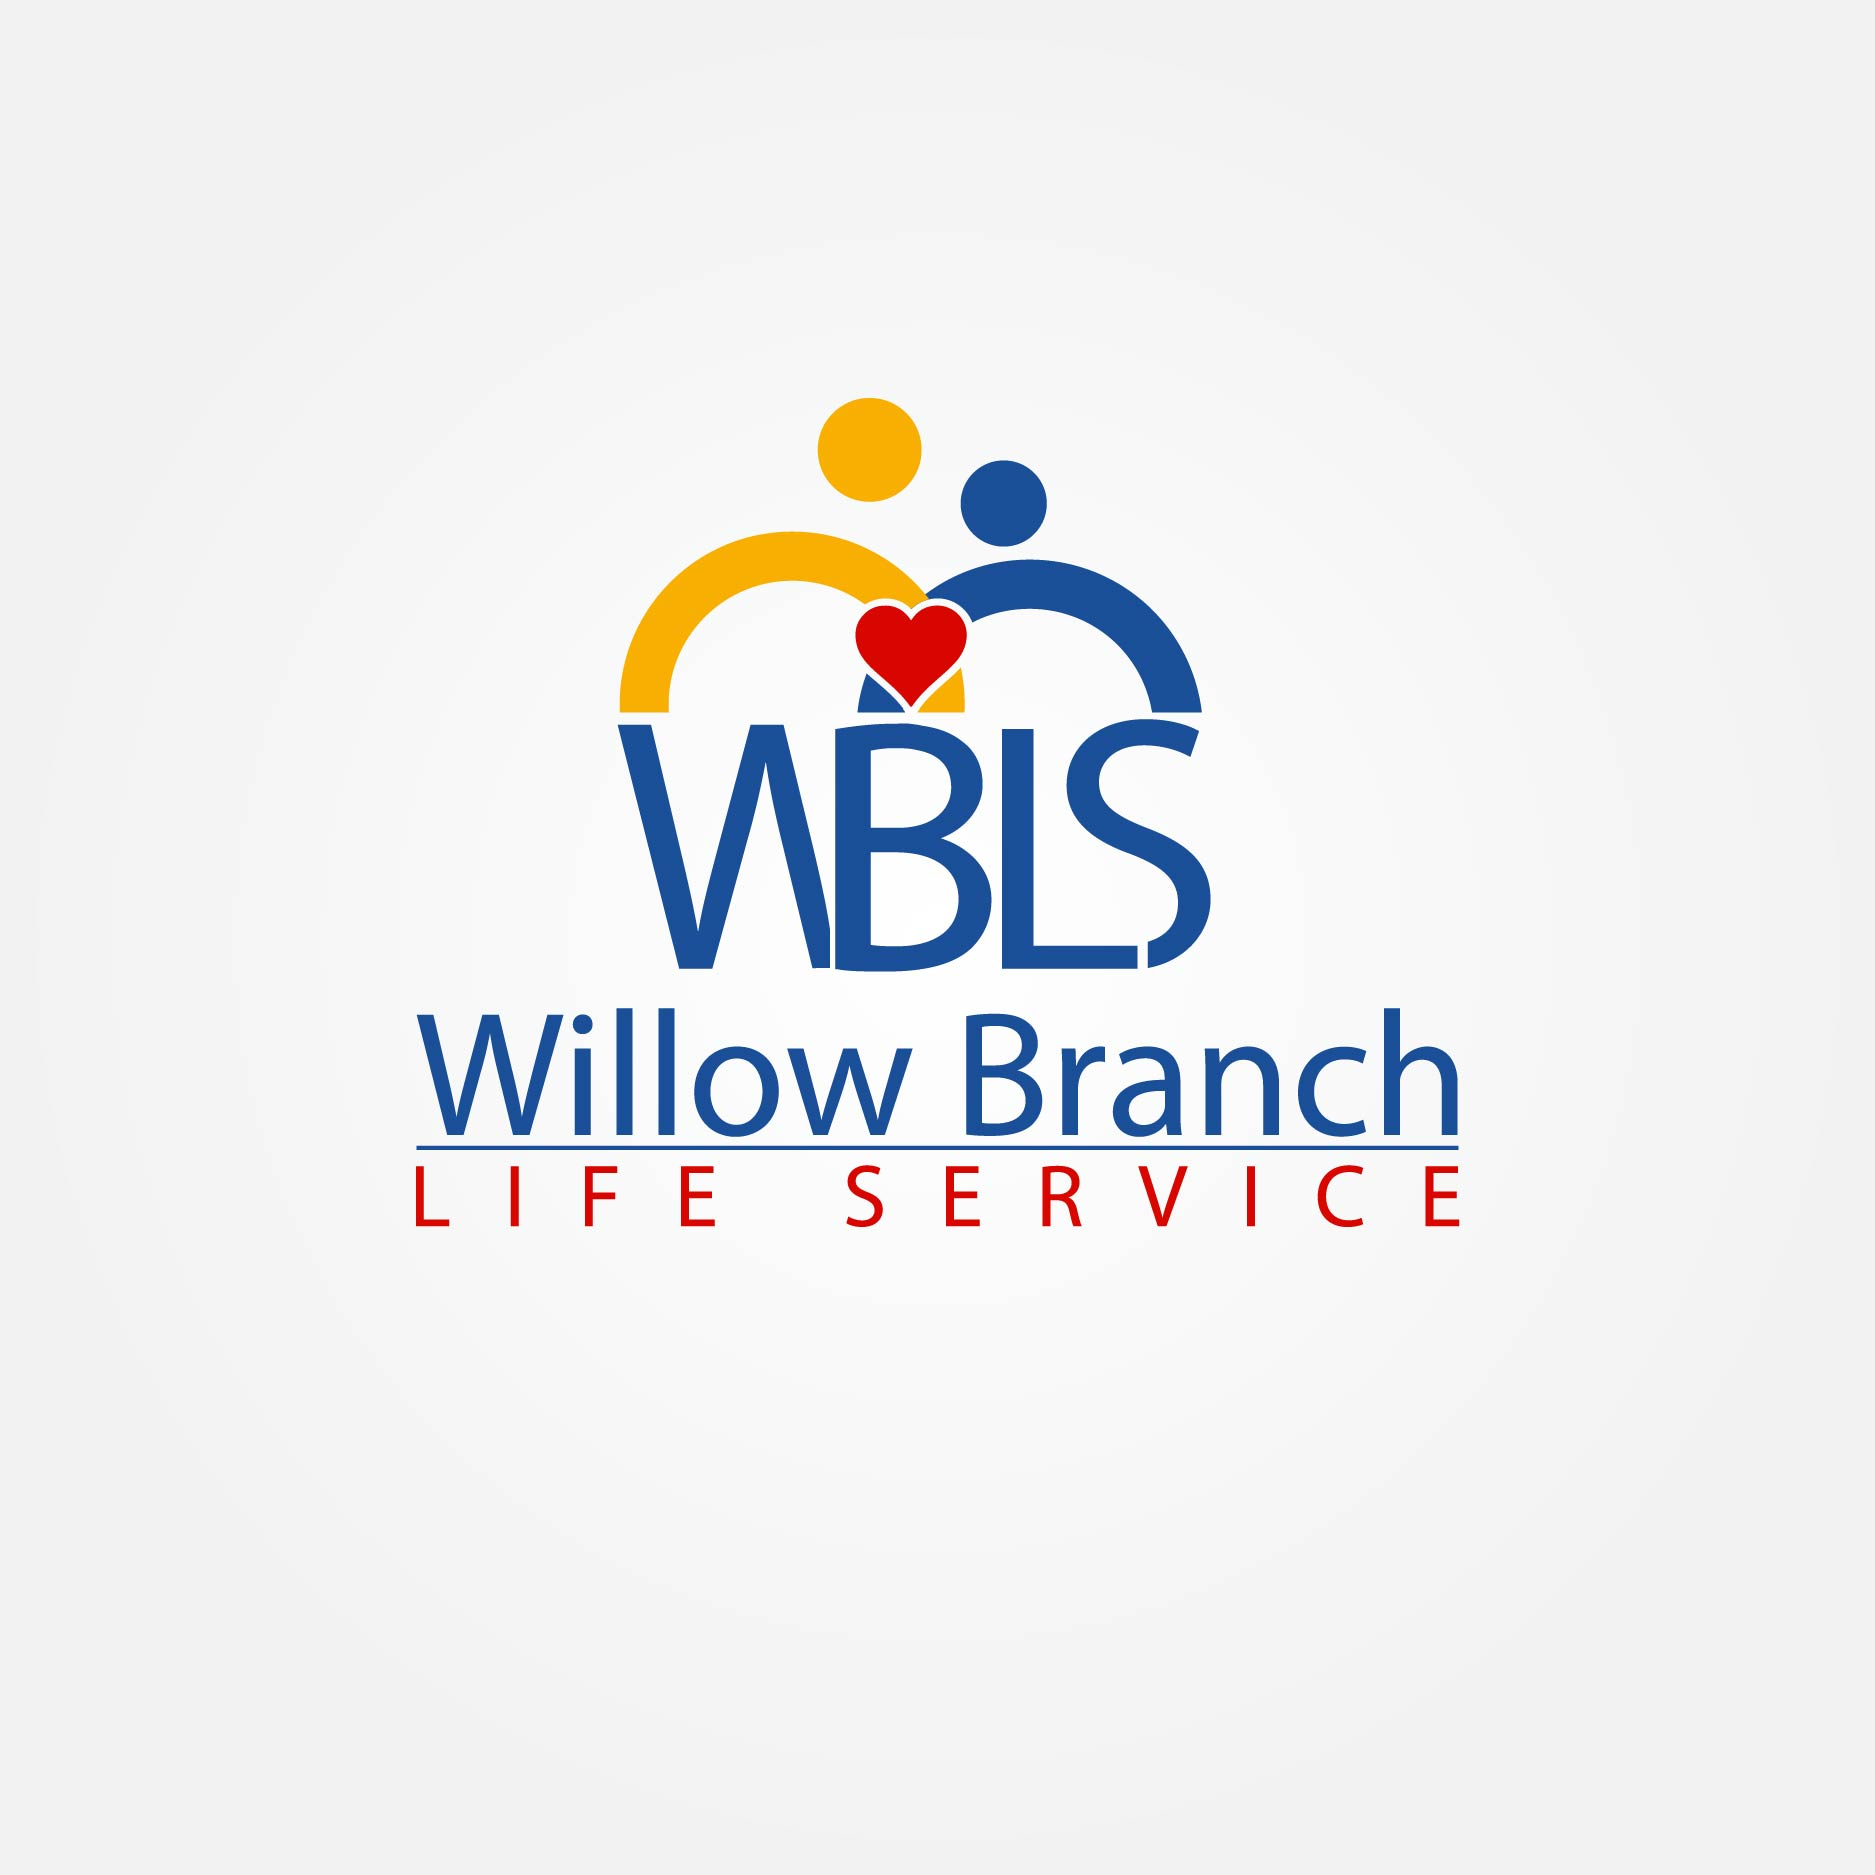 Logo Design by Batter Fly - Entry No. 1 in the Logo Design Contest Artistic Logo Design for Willow Branch Life Service.